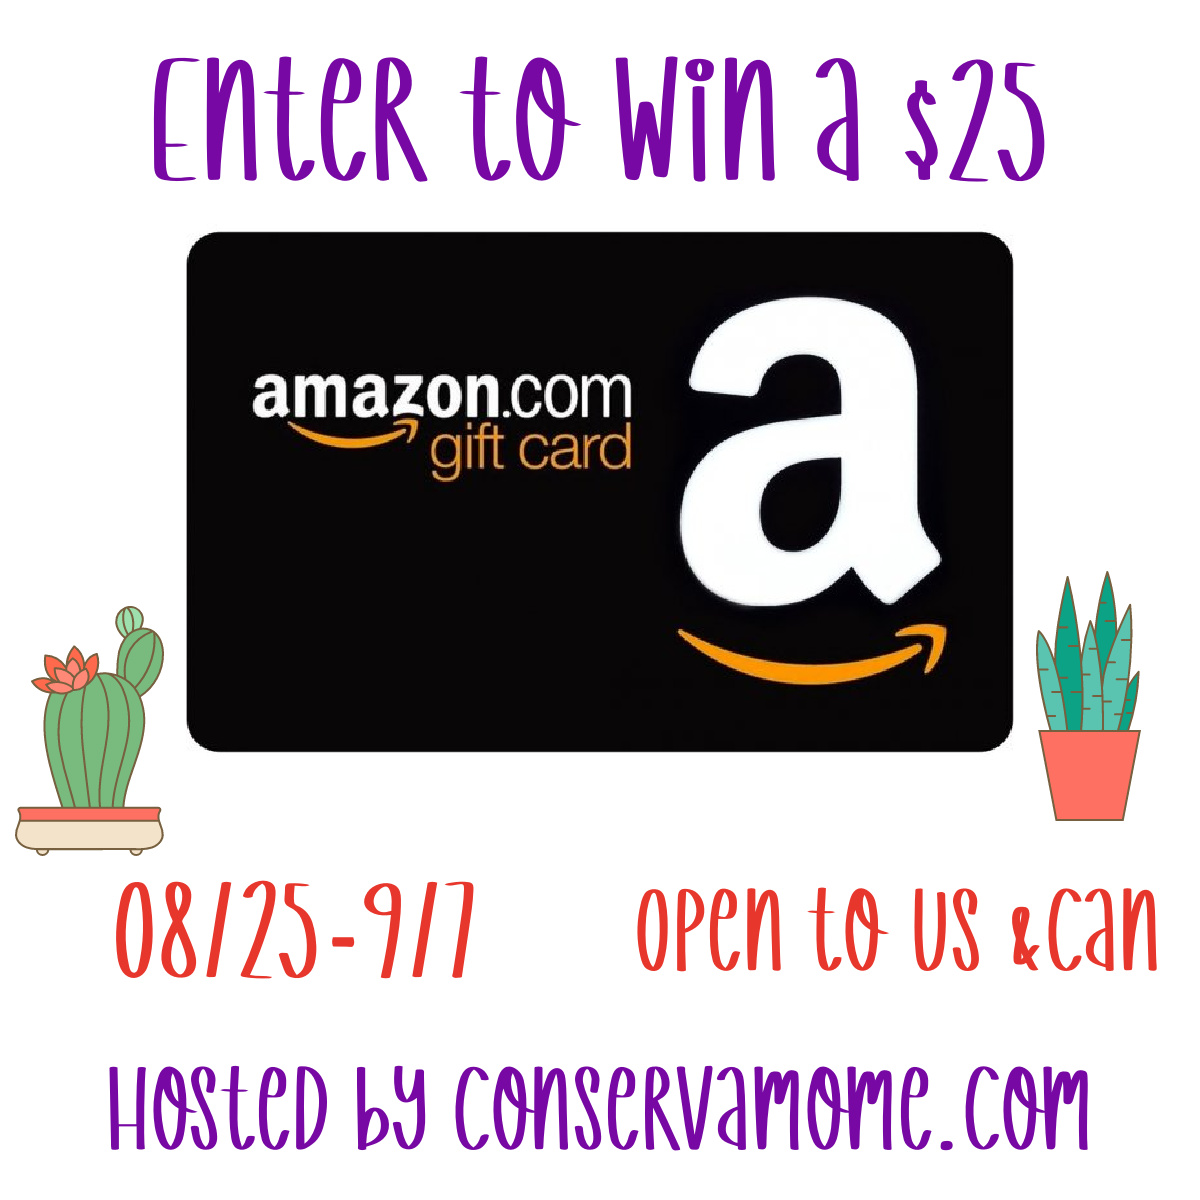 Enter to win a $25 Amazon Gift Card #Giveaway! @conservamome